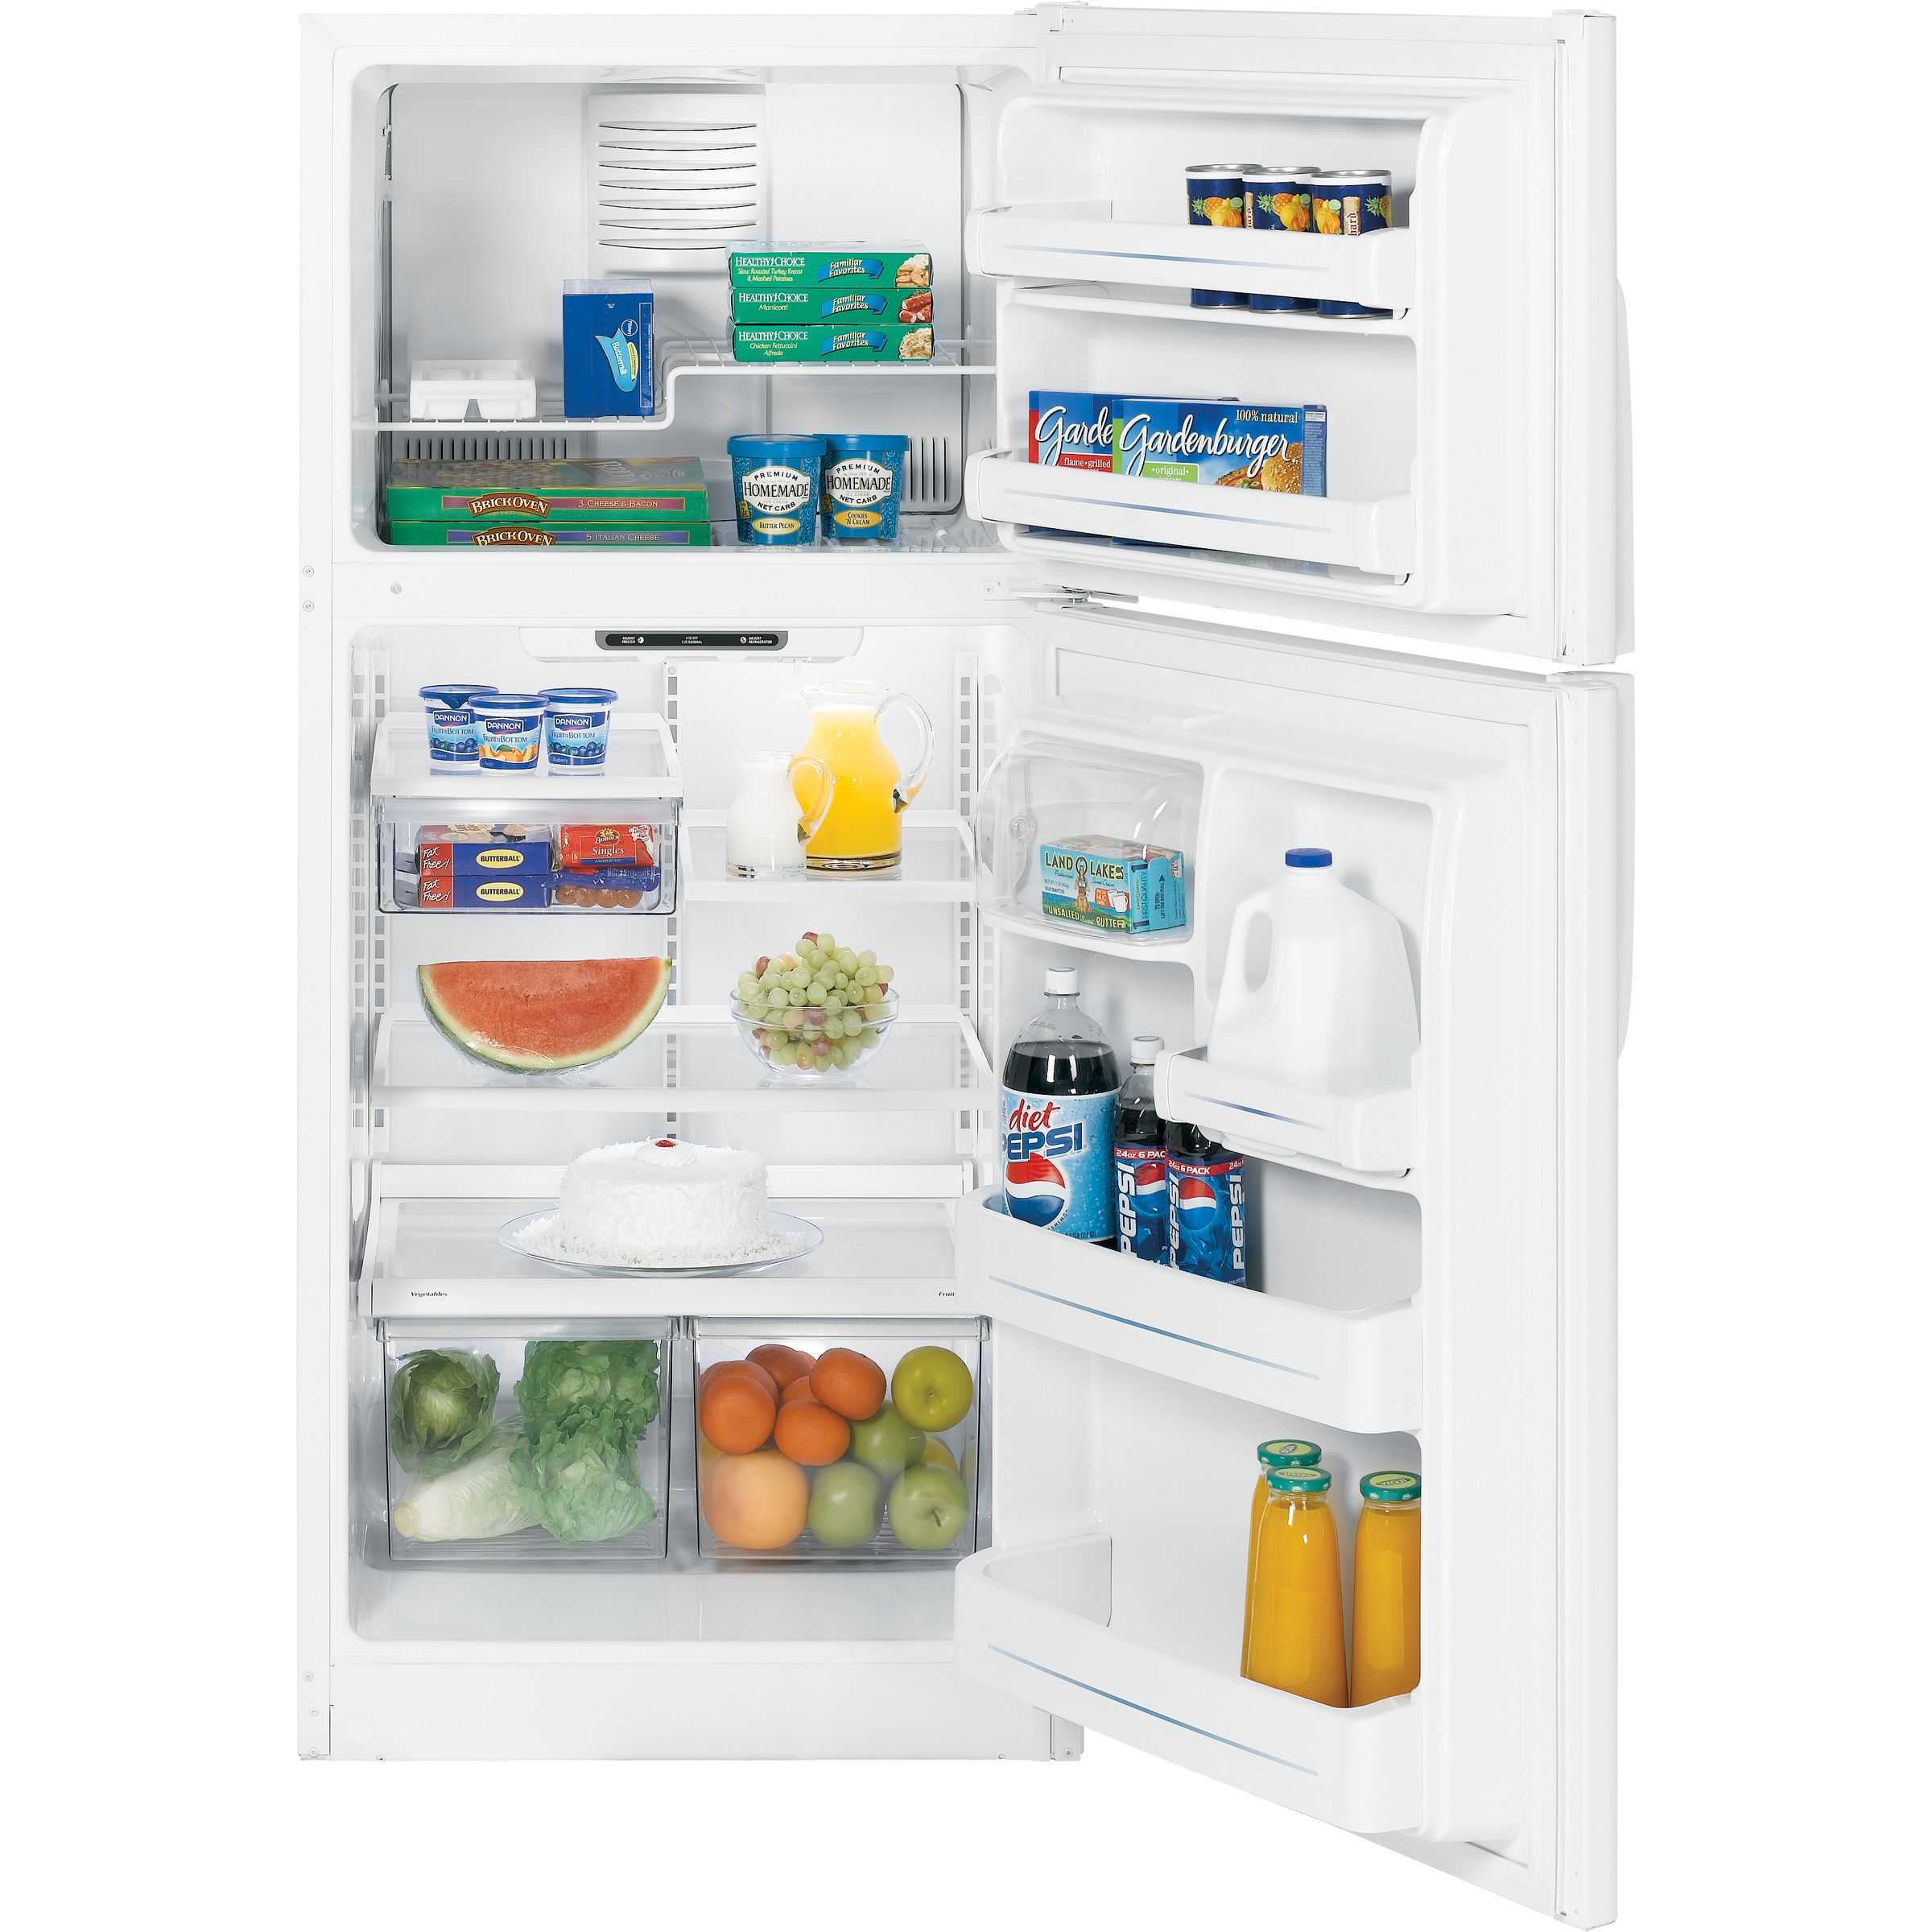 GE 18.0 cu. ft. Top-Freezer Refrigerator